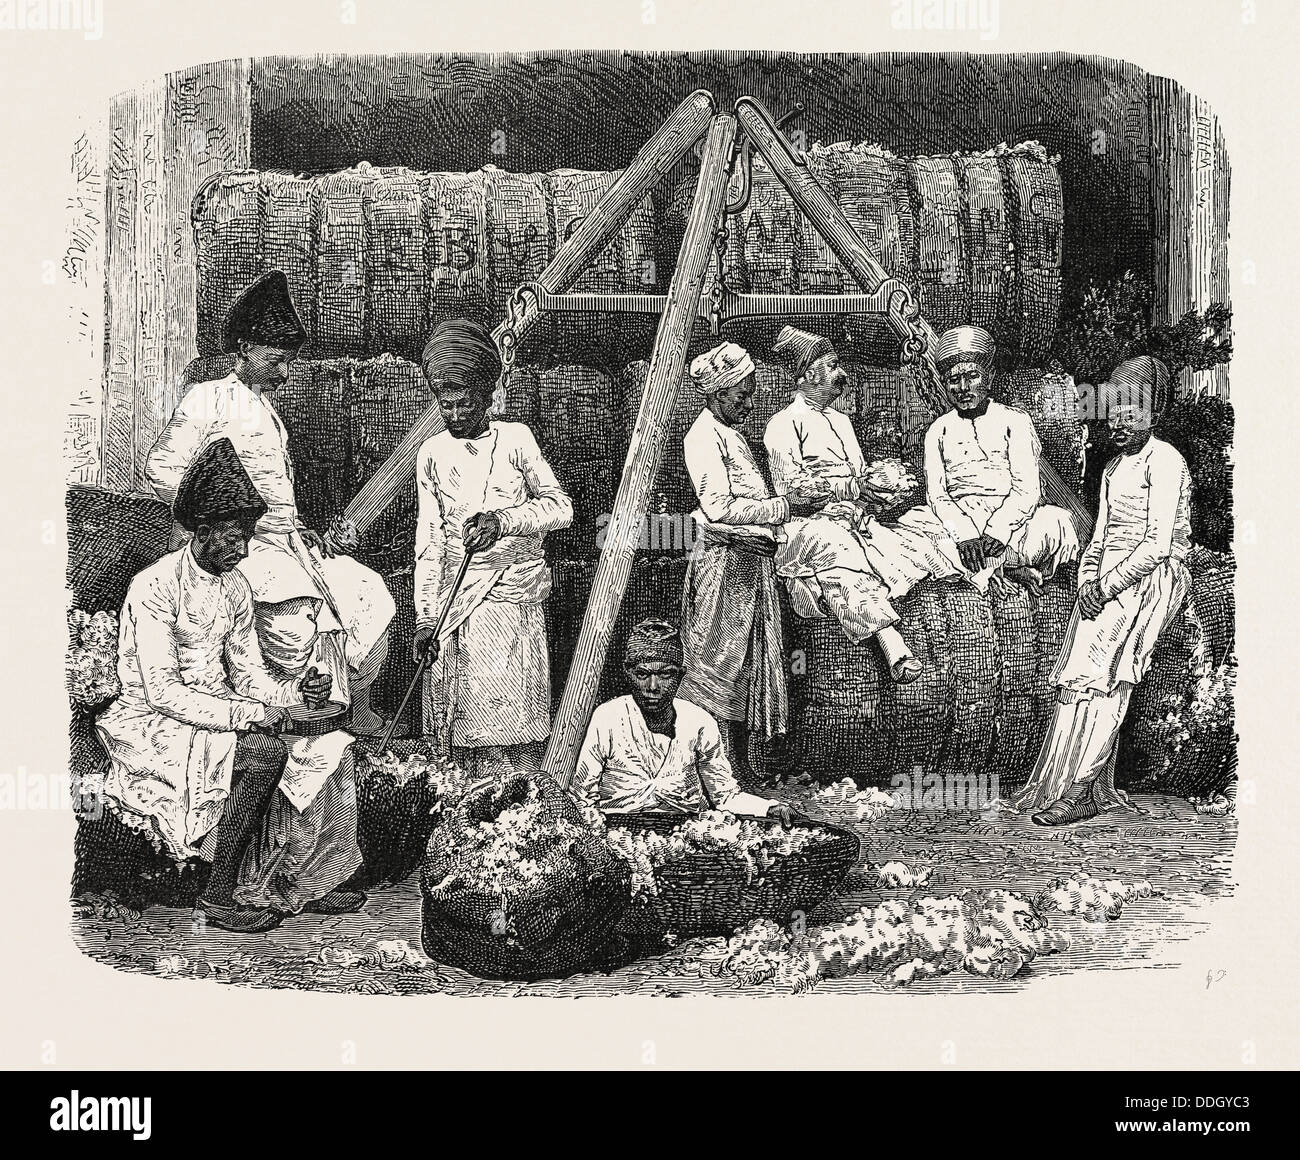 PARSEE COTTON MERCHANTS OF BOMBAY, INDIA - Stock Image